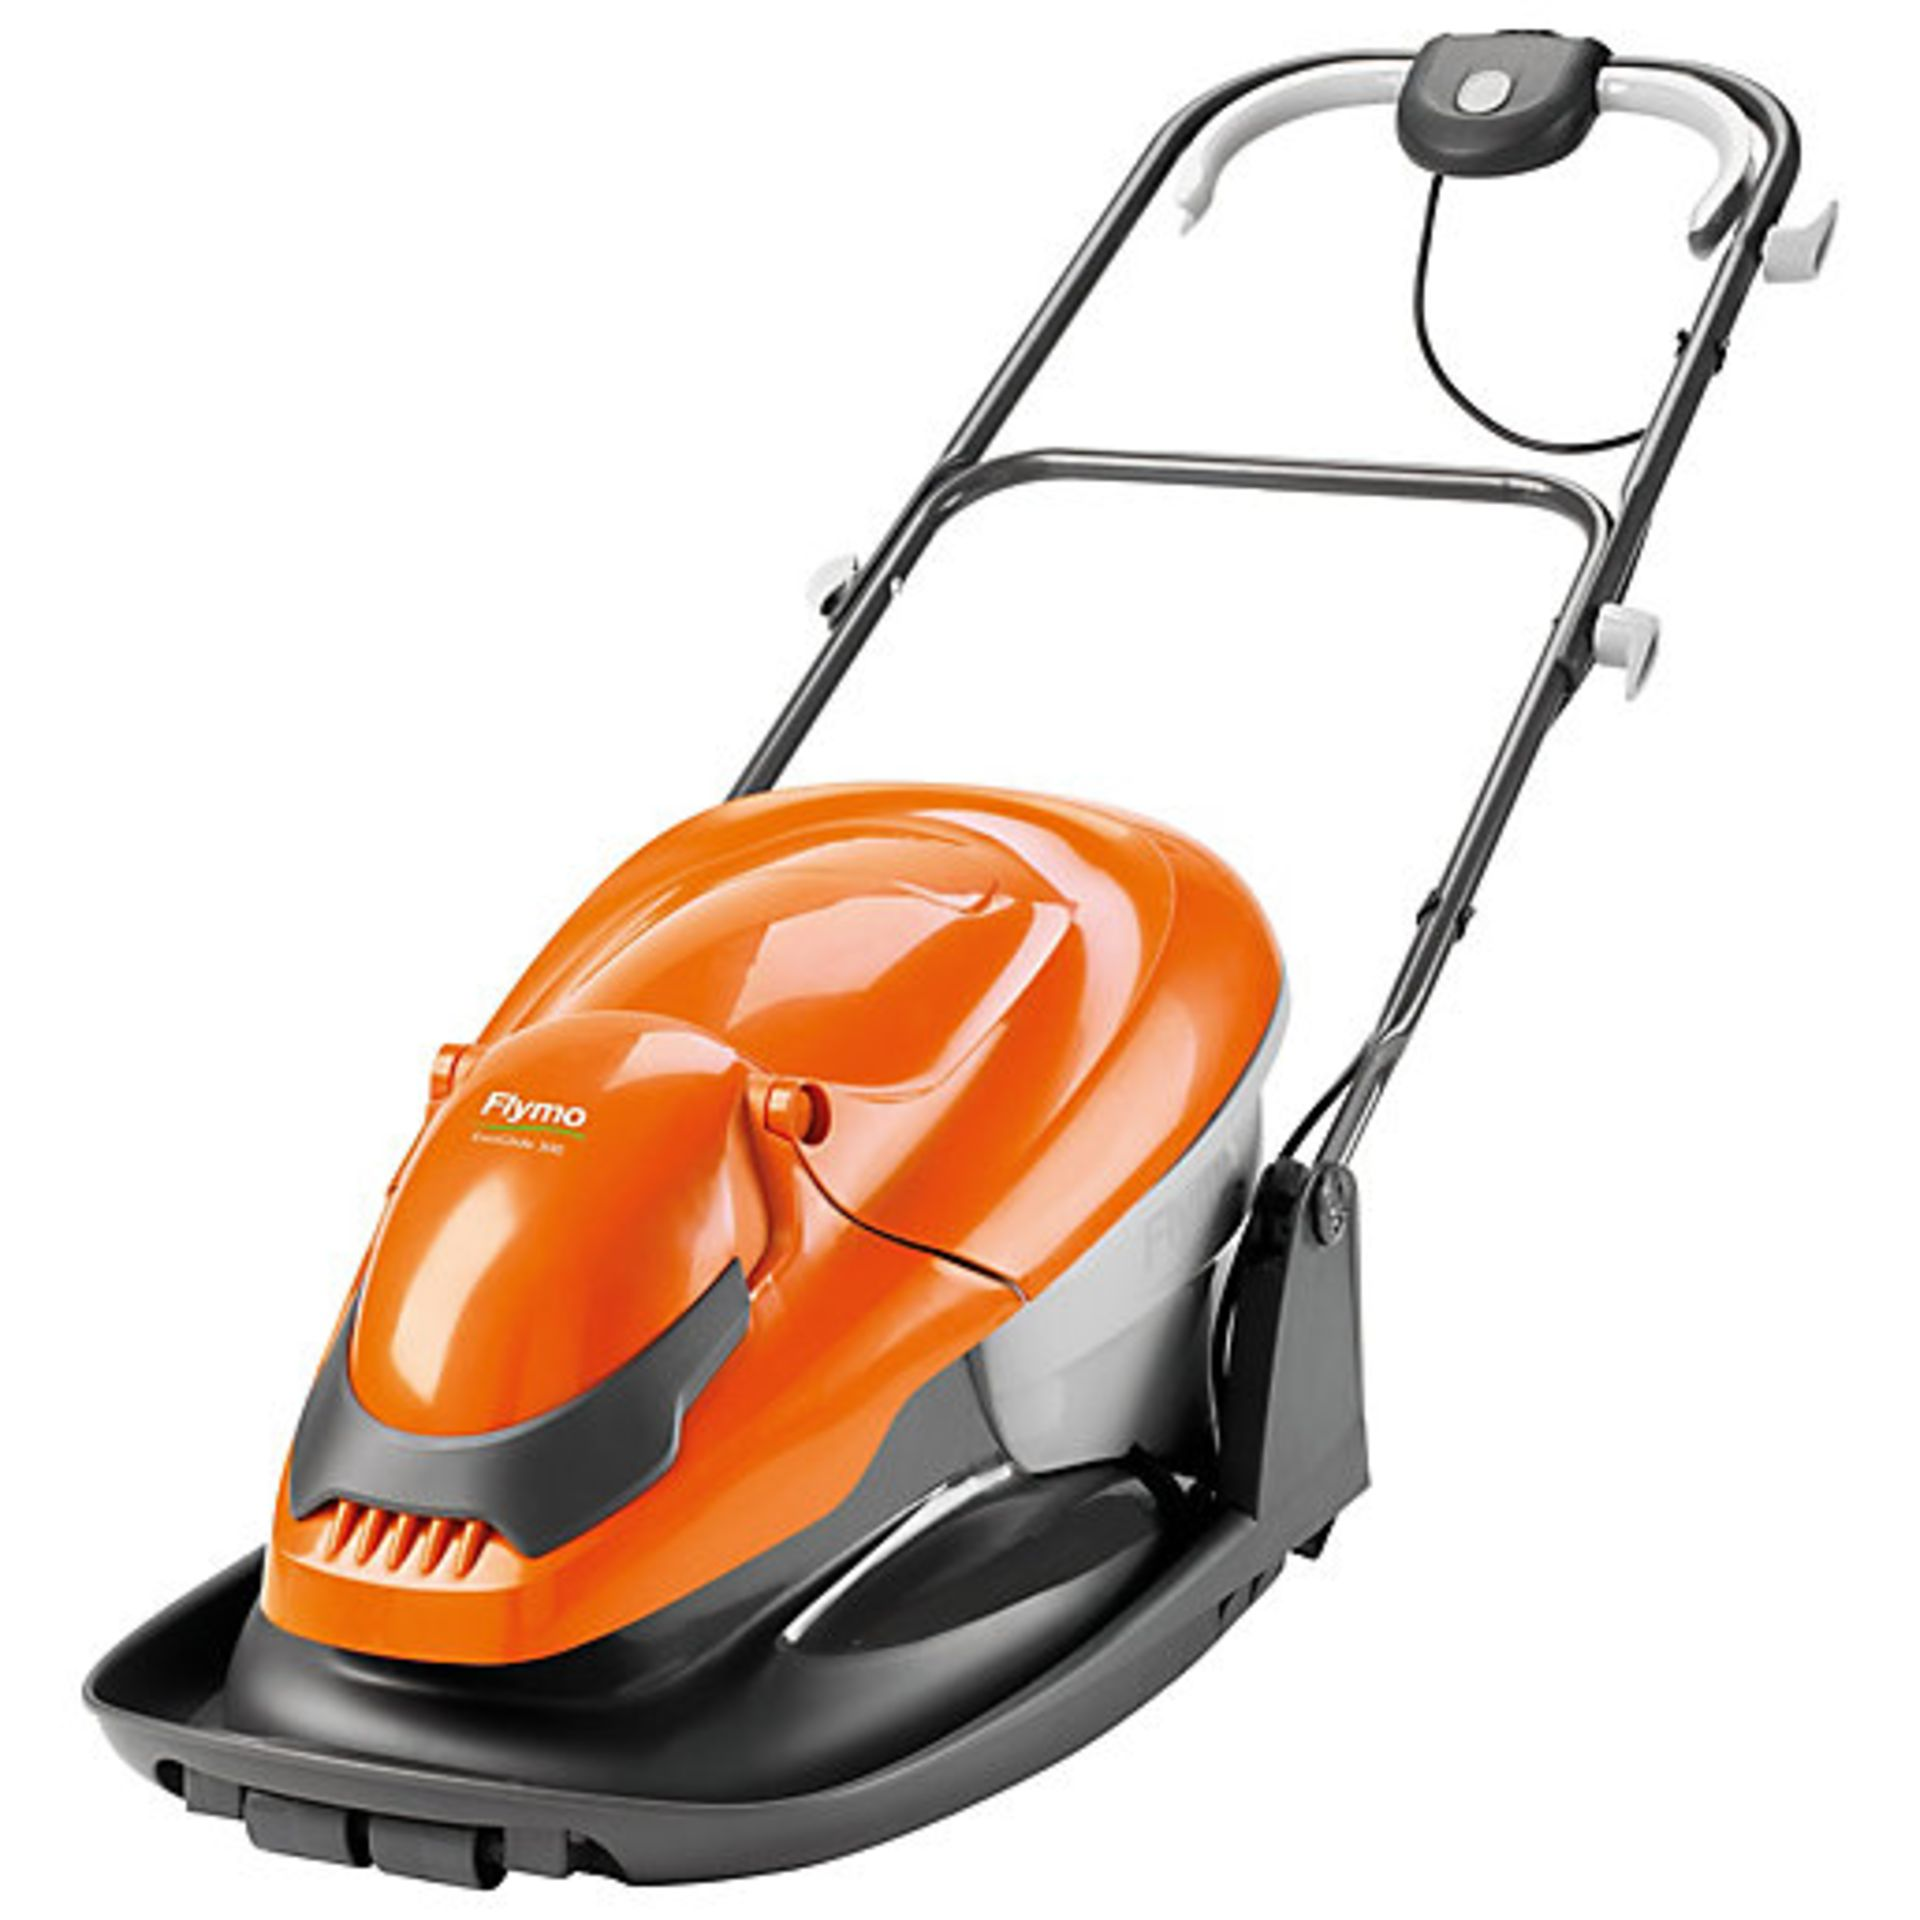 (P8) 1x Flymo EasiGlide 300 RRP £99. Hover Collect Lawnmower. New, Sealed Item.